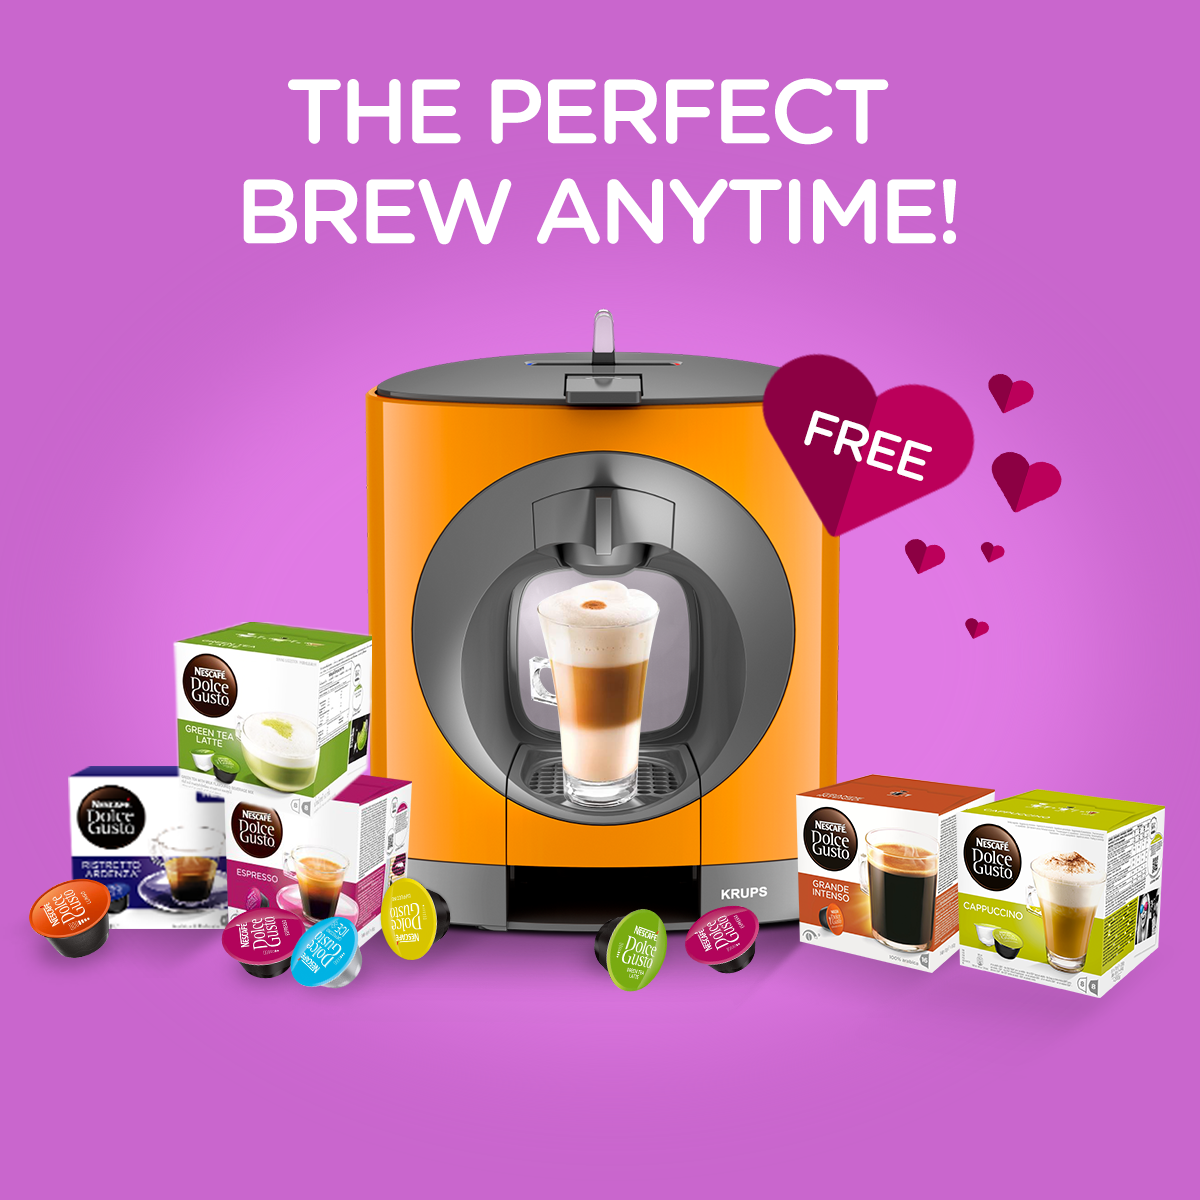 free nescafe dolce gusto